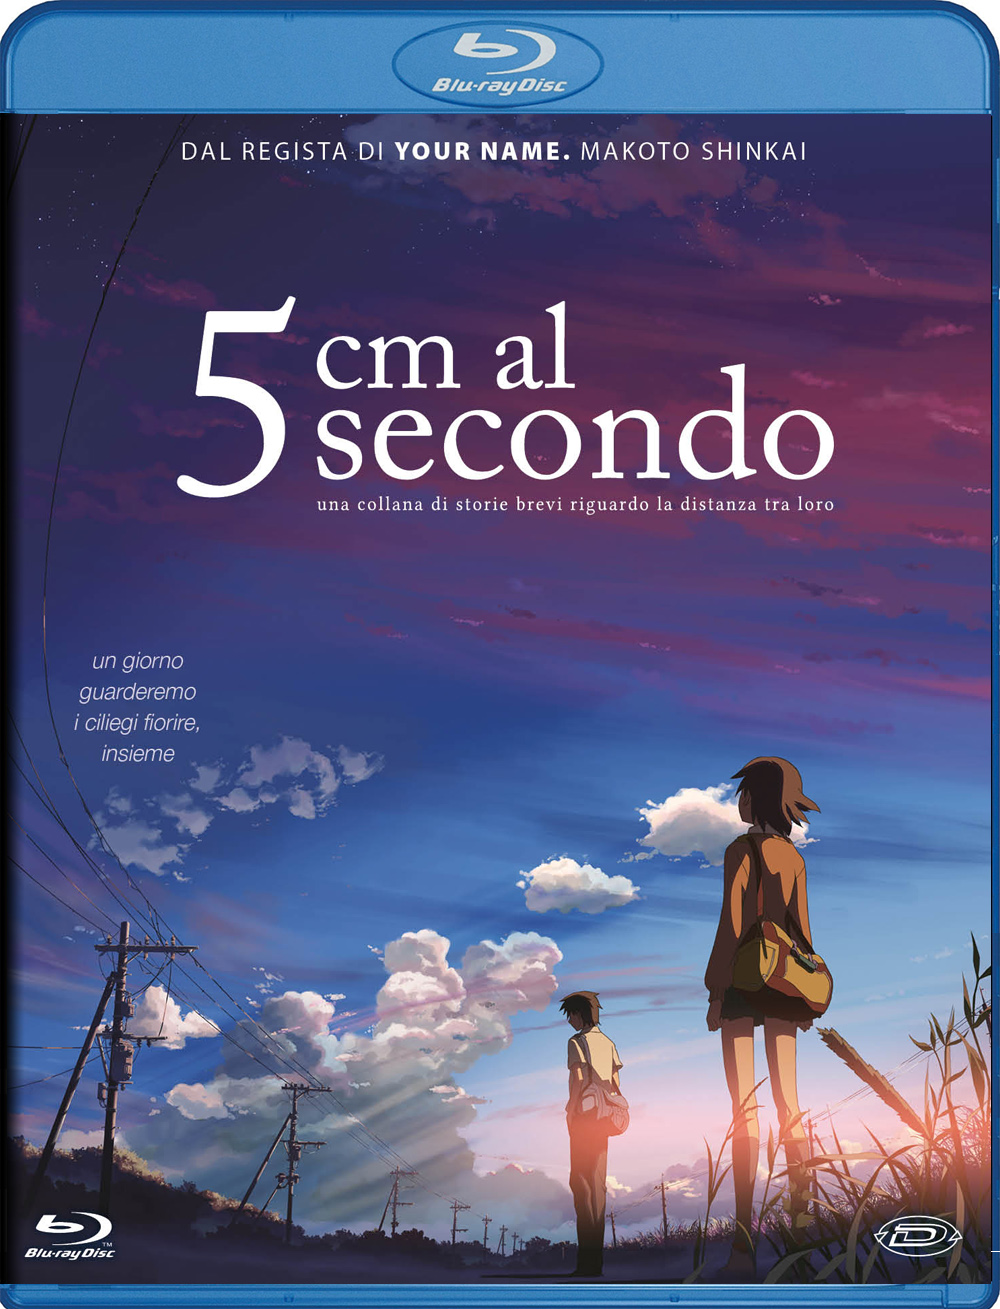 5 CM AL SECONDO (STANDARD EDITION) - BLU RAY